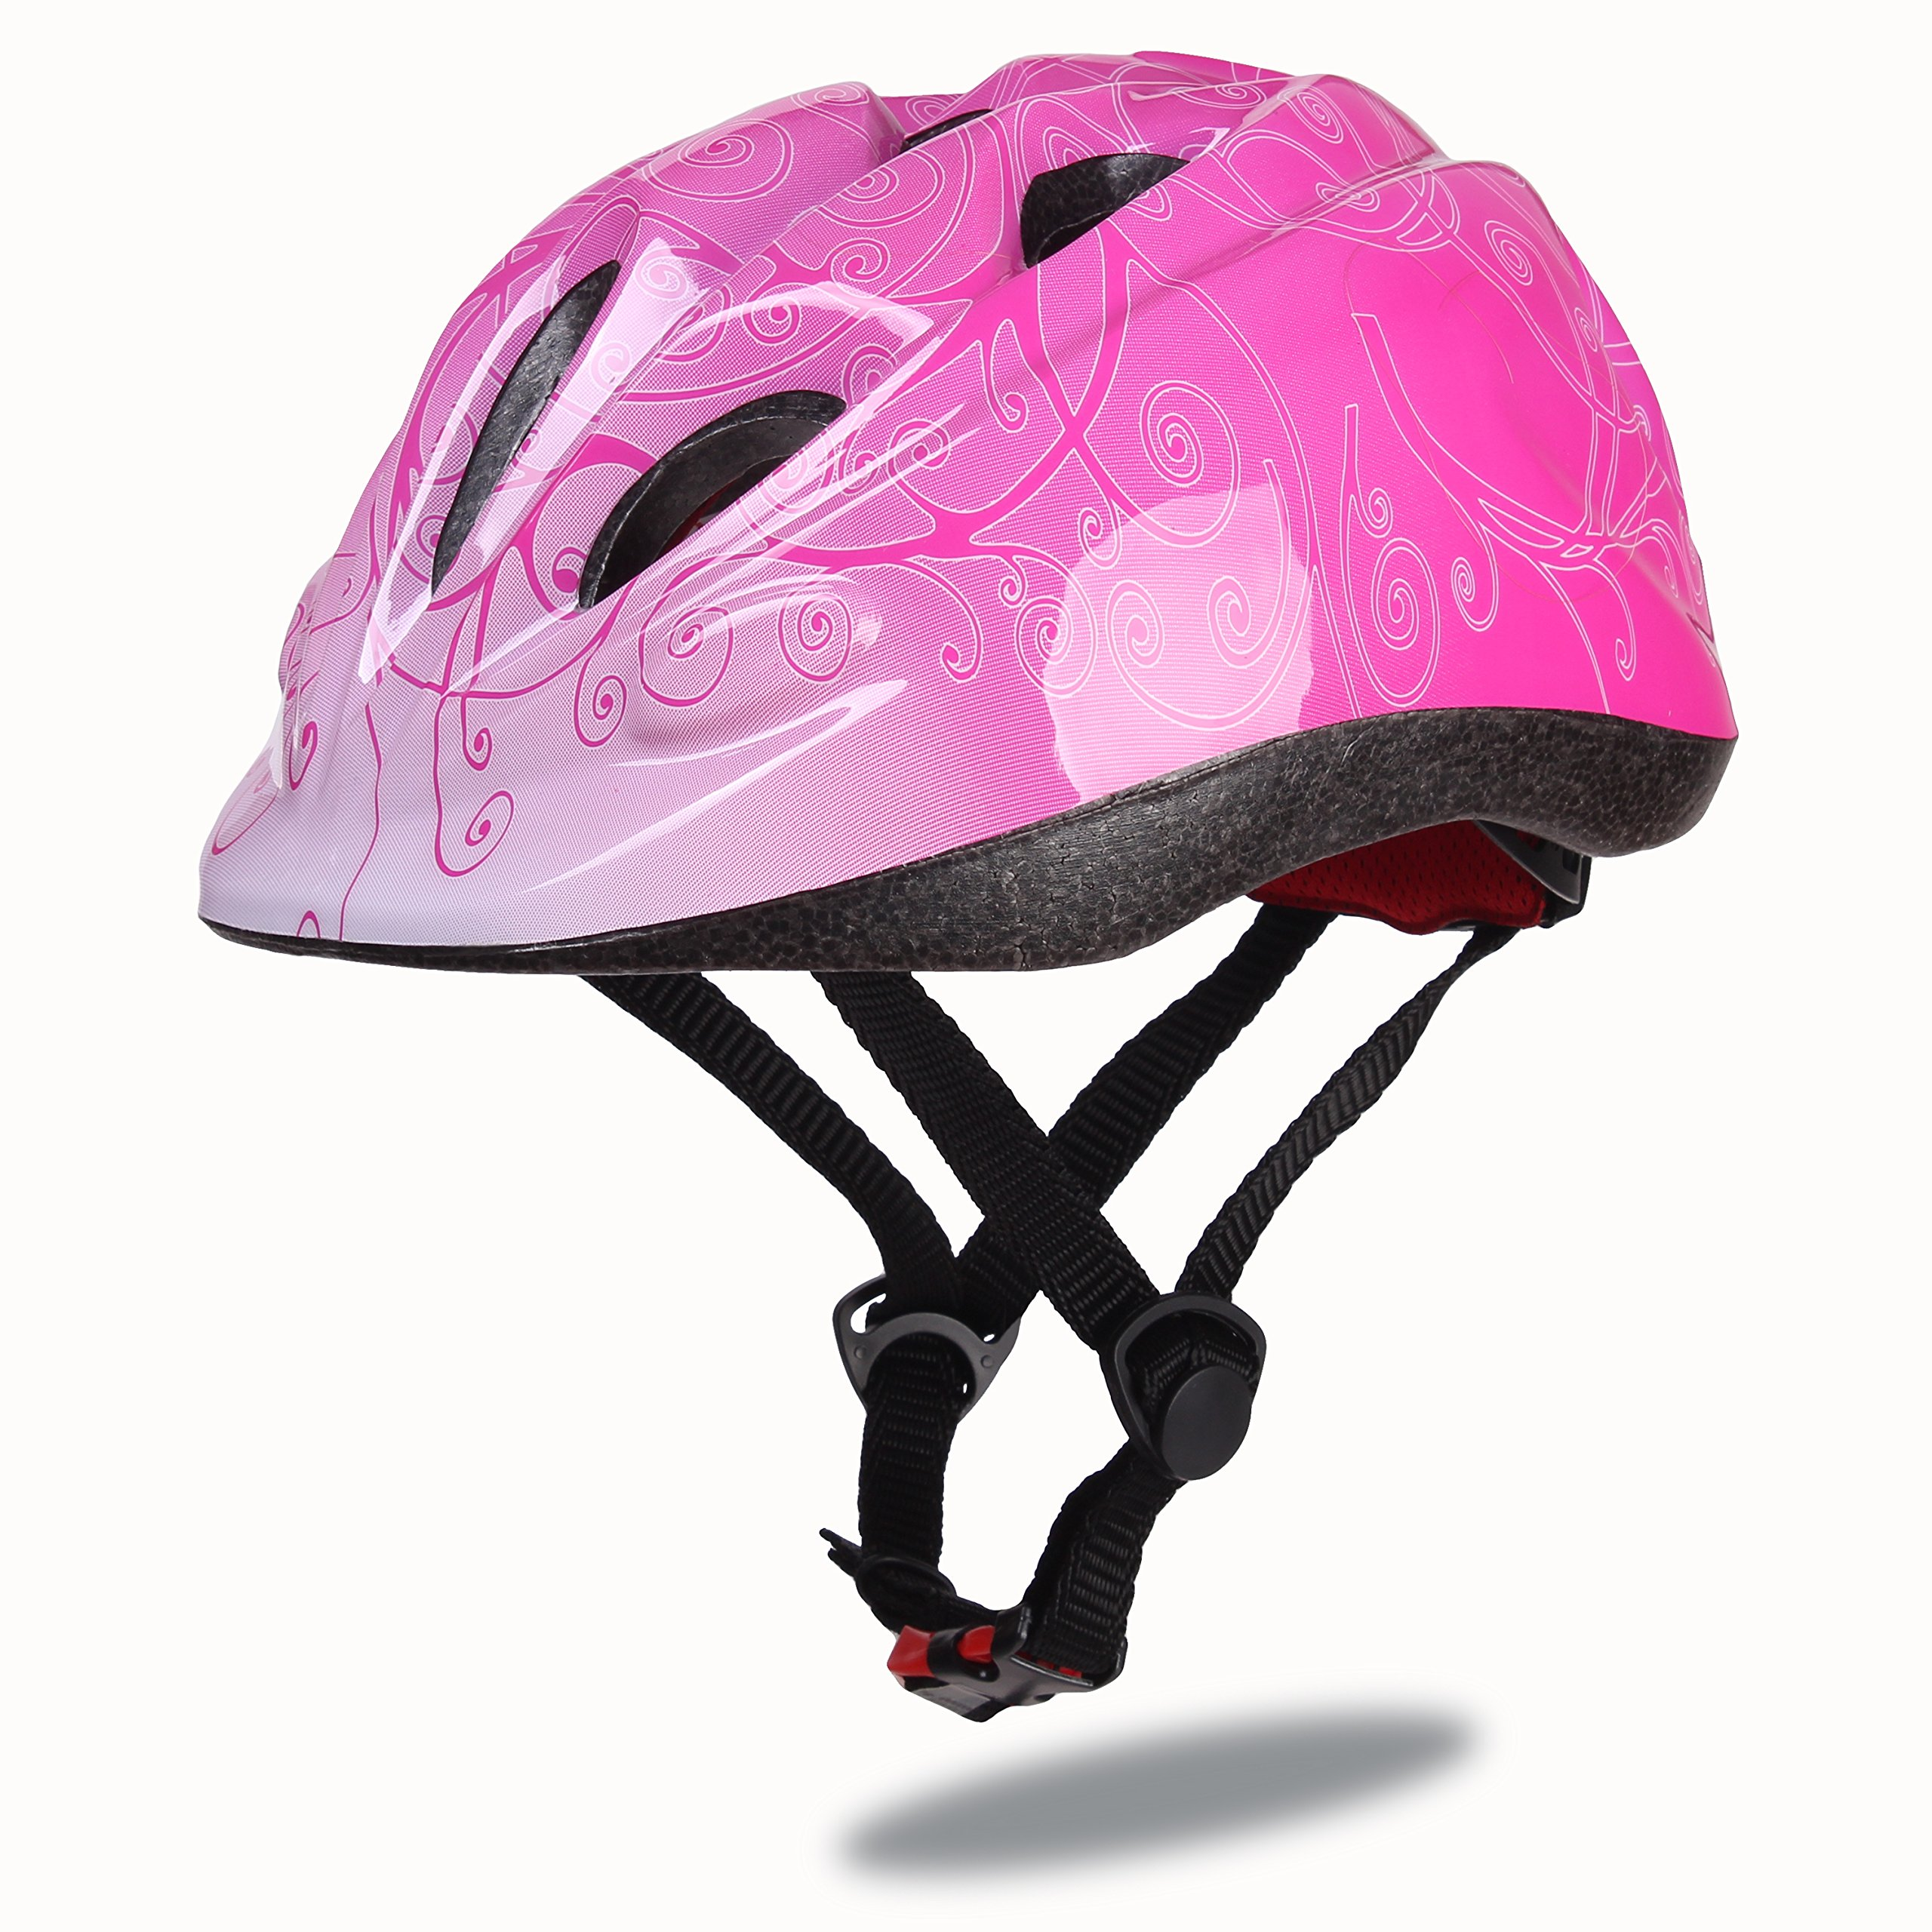 Dostar Kids Bike Helmet – Adjustable Helmet from Ages 3-6 - Cycling Scooter Multi-sport Durable Kid Bicycle Helmets Boys and Girls will LOVE - CSPC Certified for Safety and Comfort (Red)